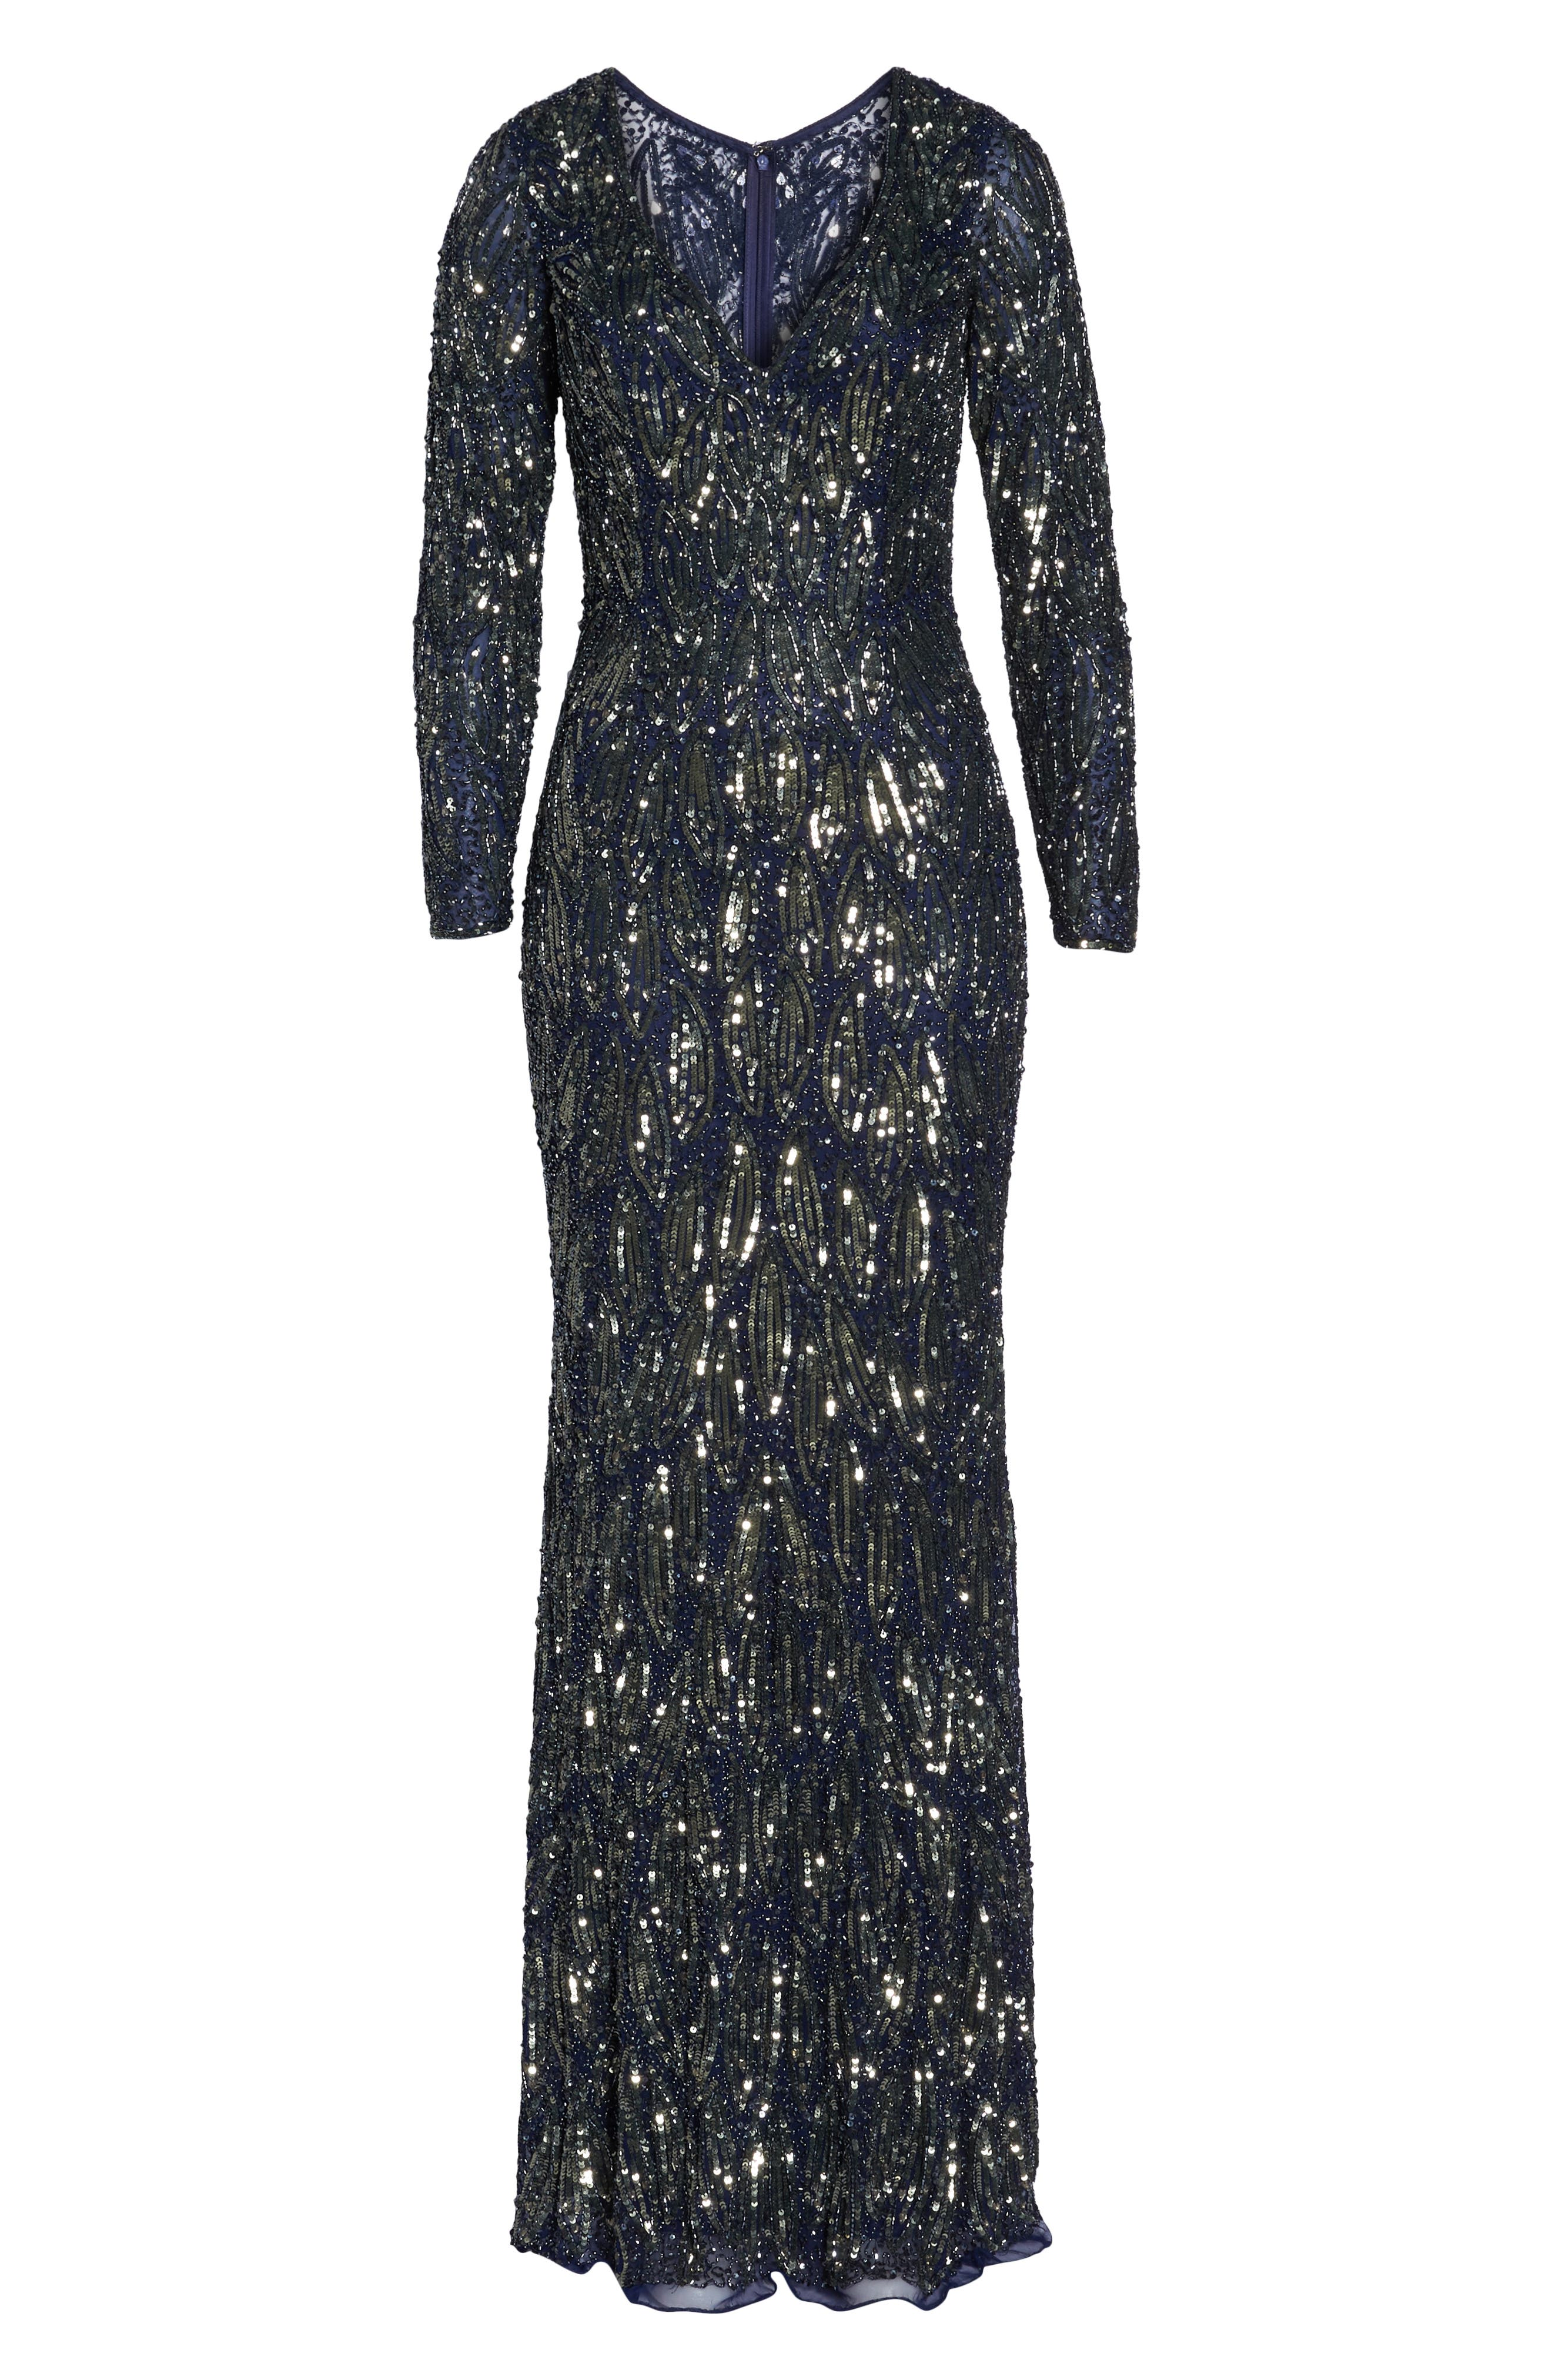 MAC DUGGAL, Beaded Long Sleeve Gown, Alternate thumbnail 7, color, MIDNIGHT